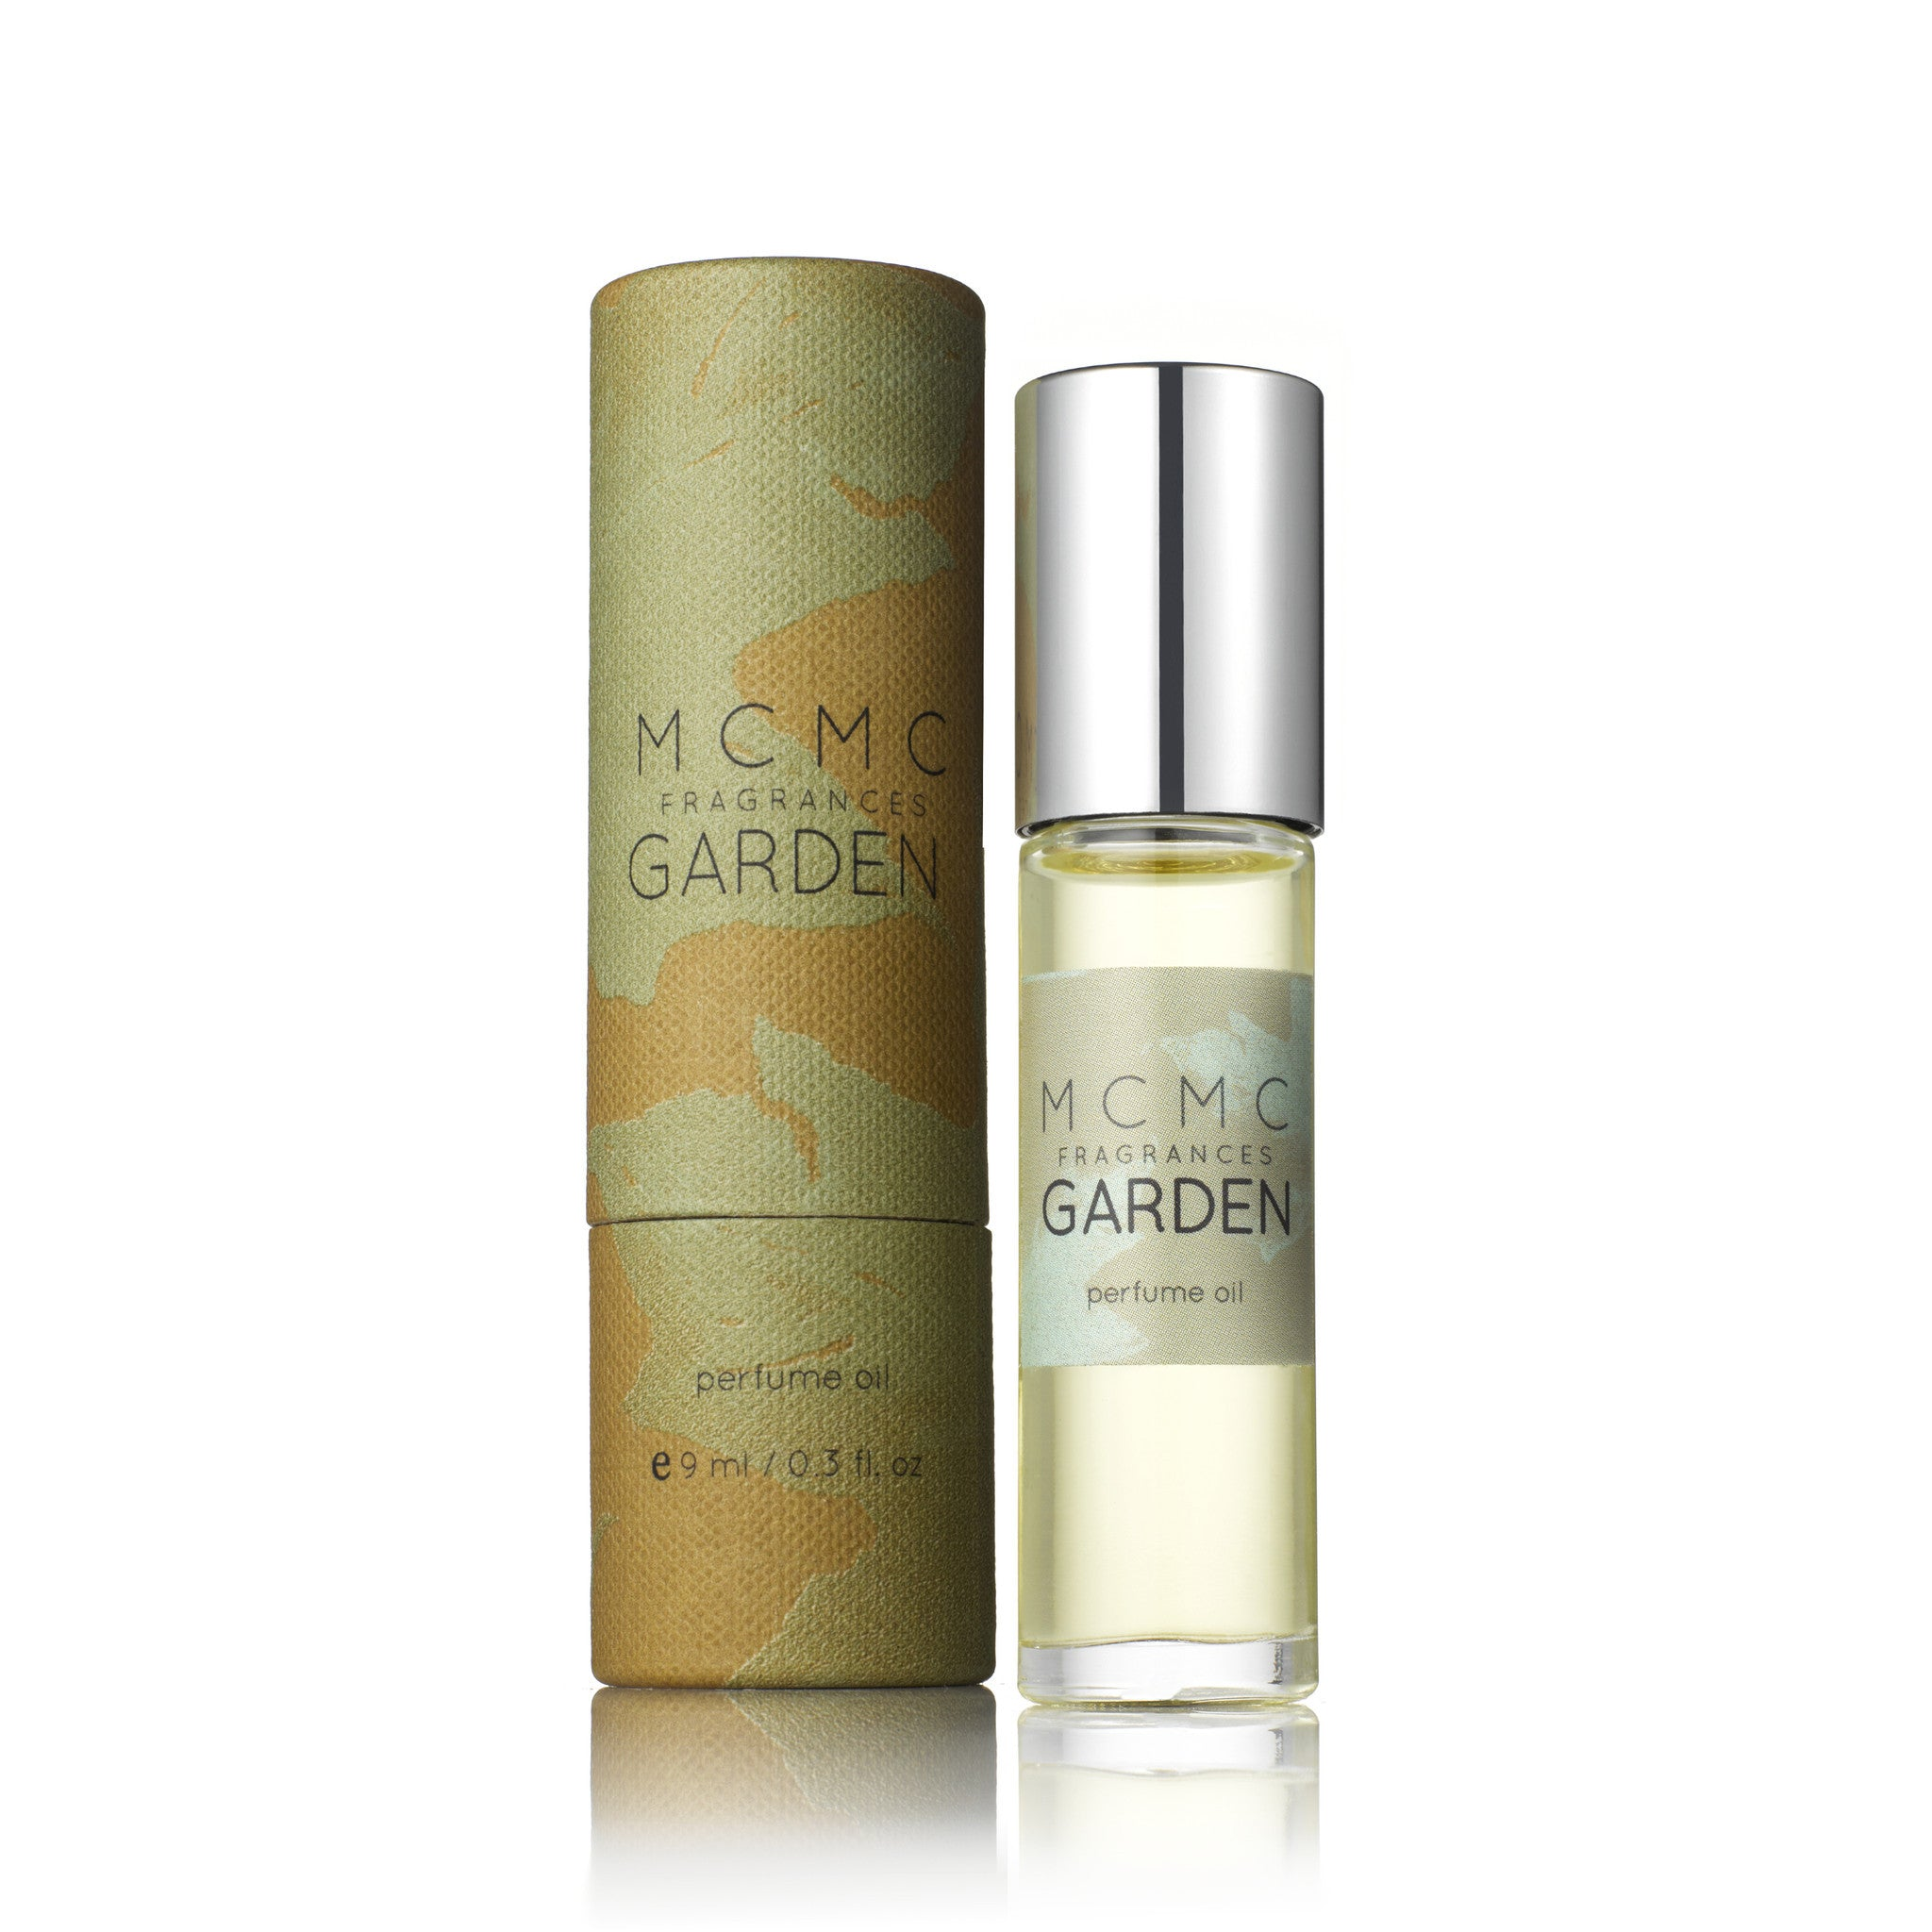 MCMC FRAGRANCES - GARDEN 9ML PERFUME OIL